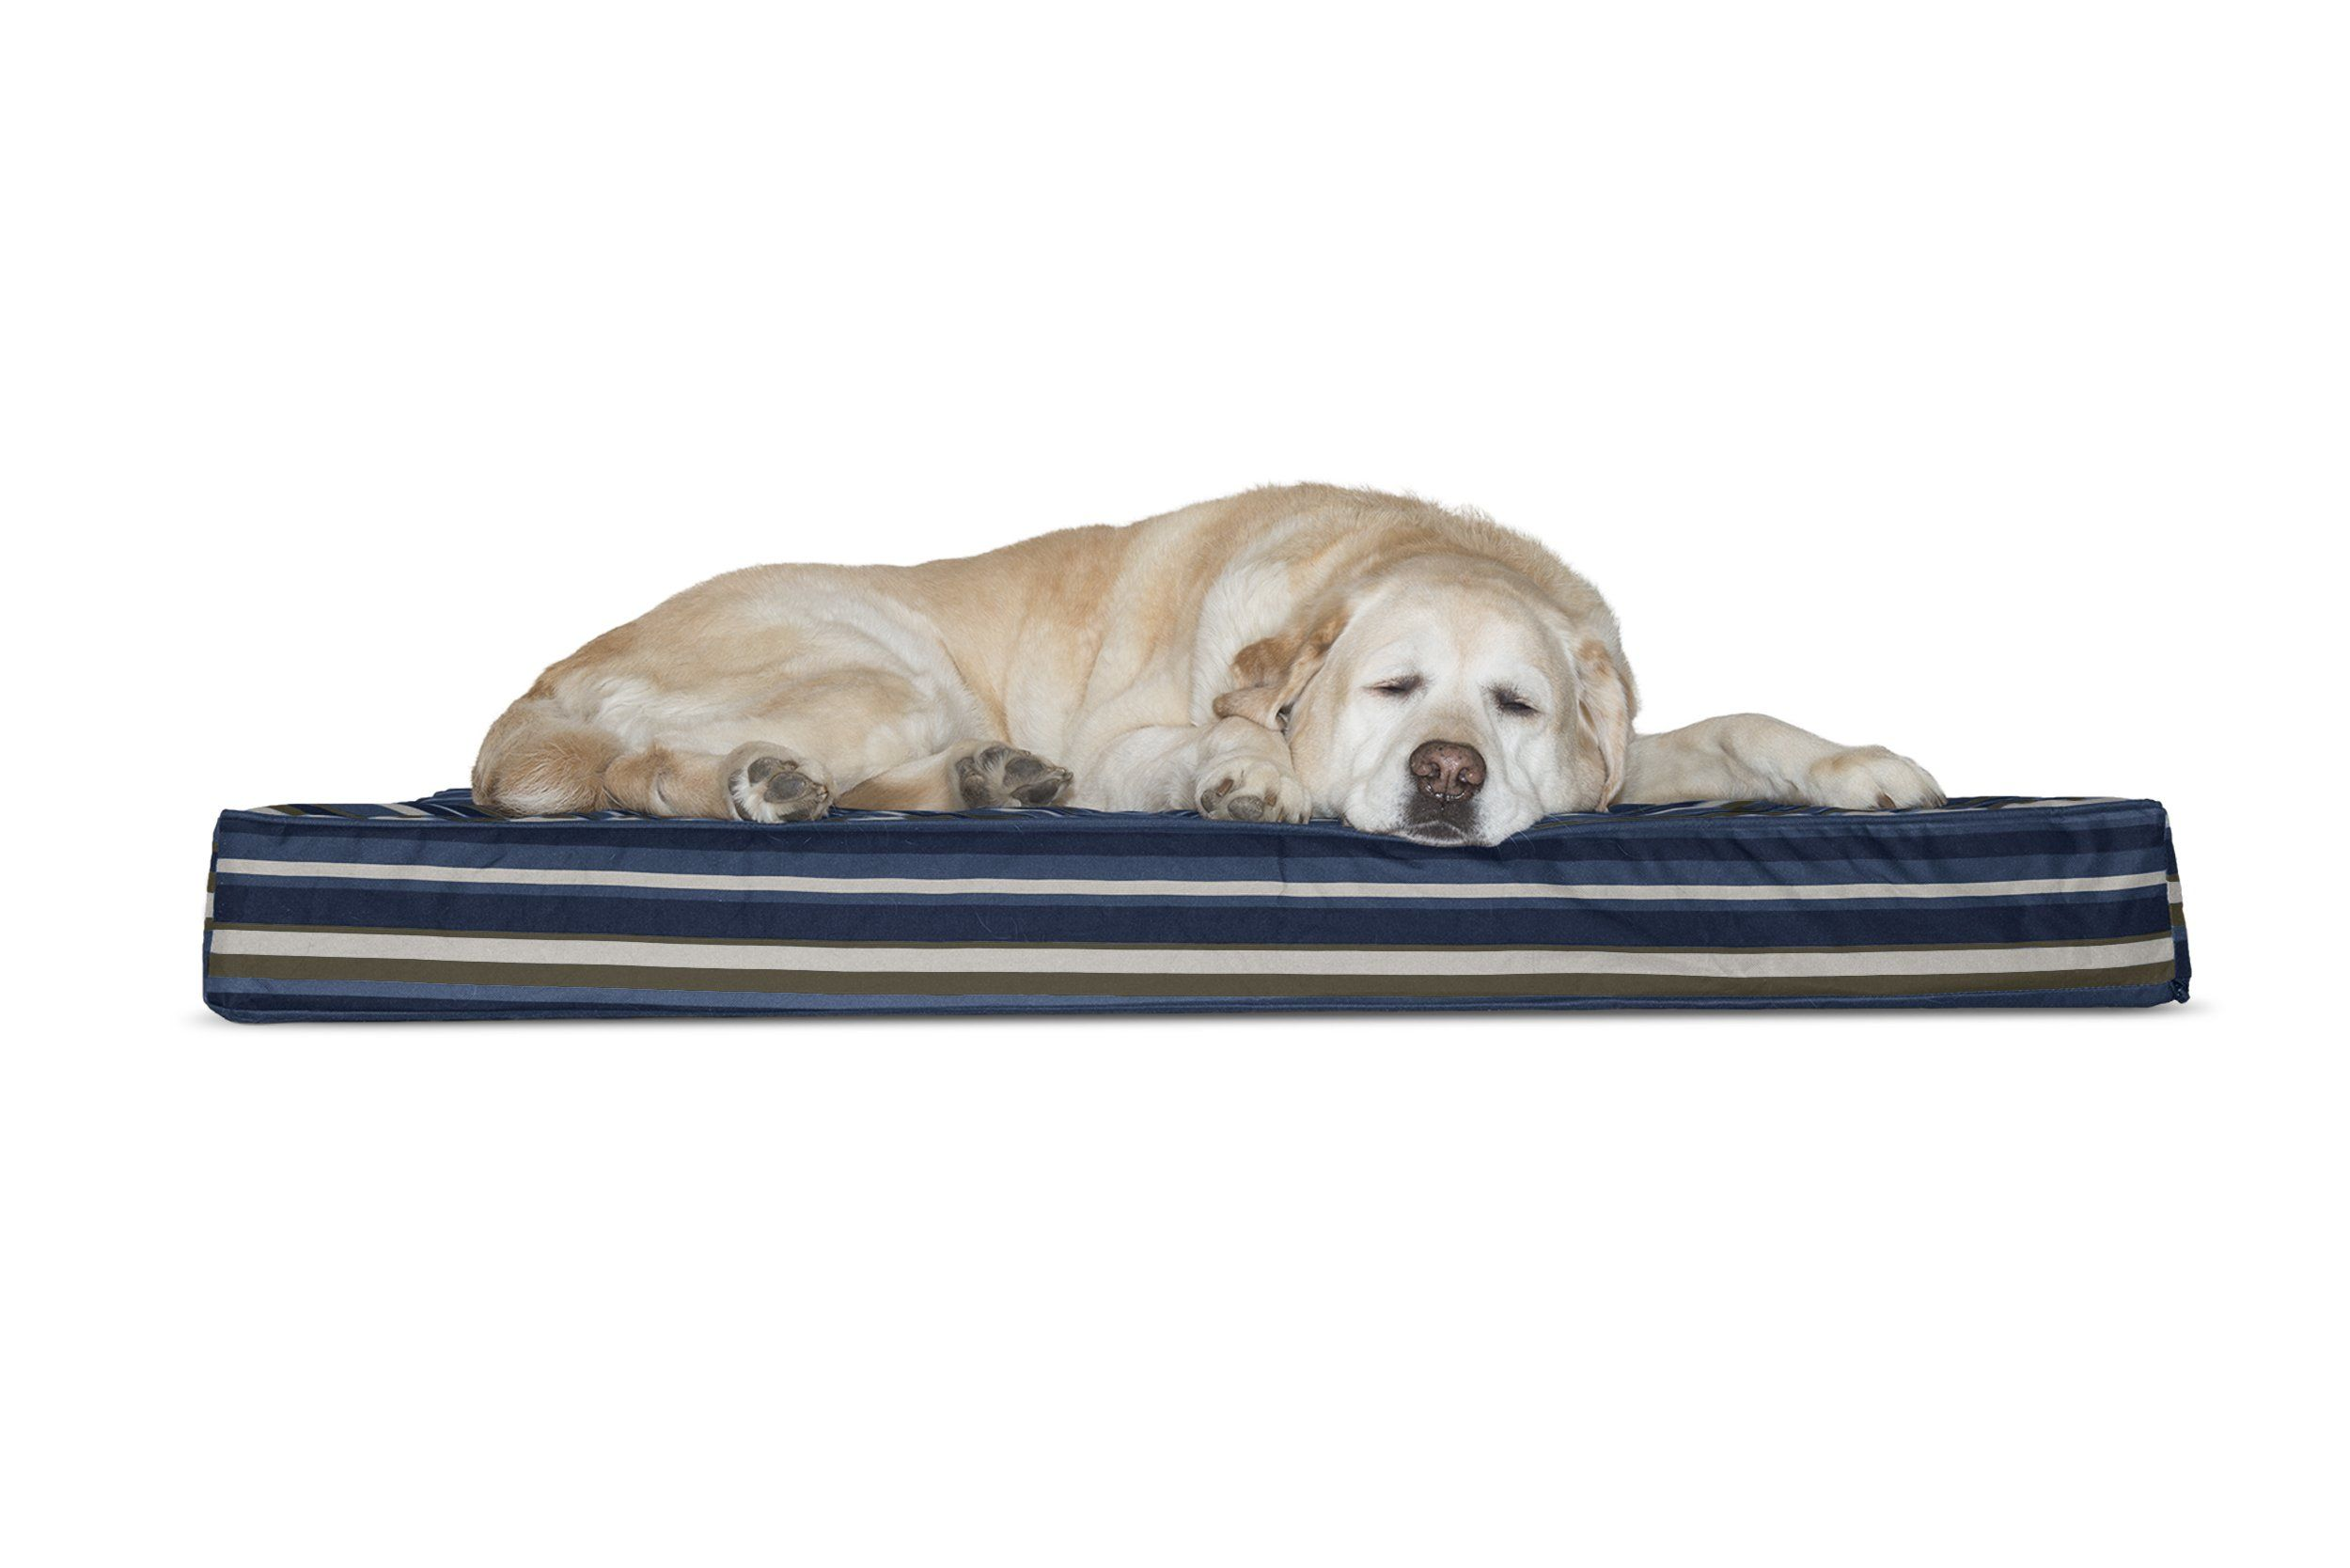 Furhaven Deluxe Orthopedic Indoor Outdoor Pet Bed Mattress For Dogs And Cats Striped Blue Jumbo Want Additional Dog Pet Beds Dog Pillow Bed Outdoor Pet Bed